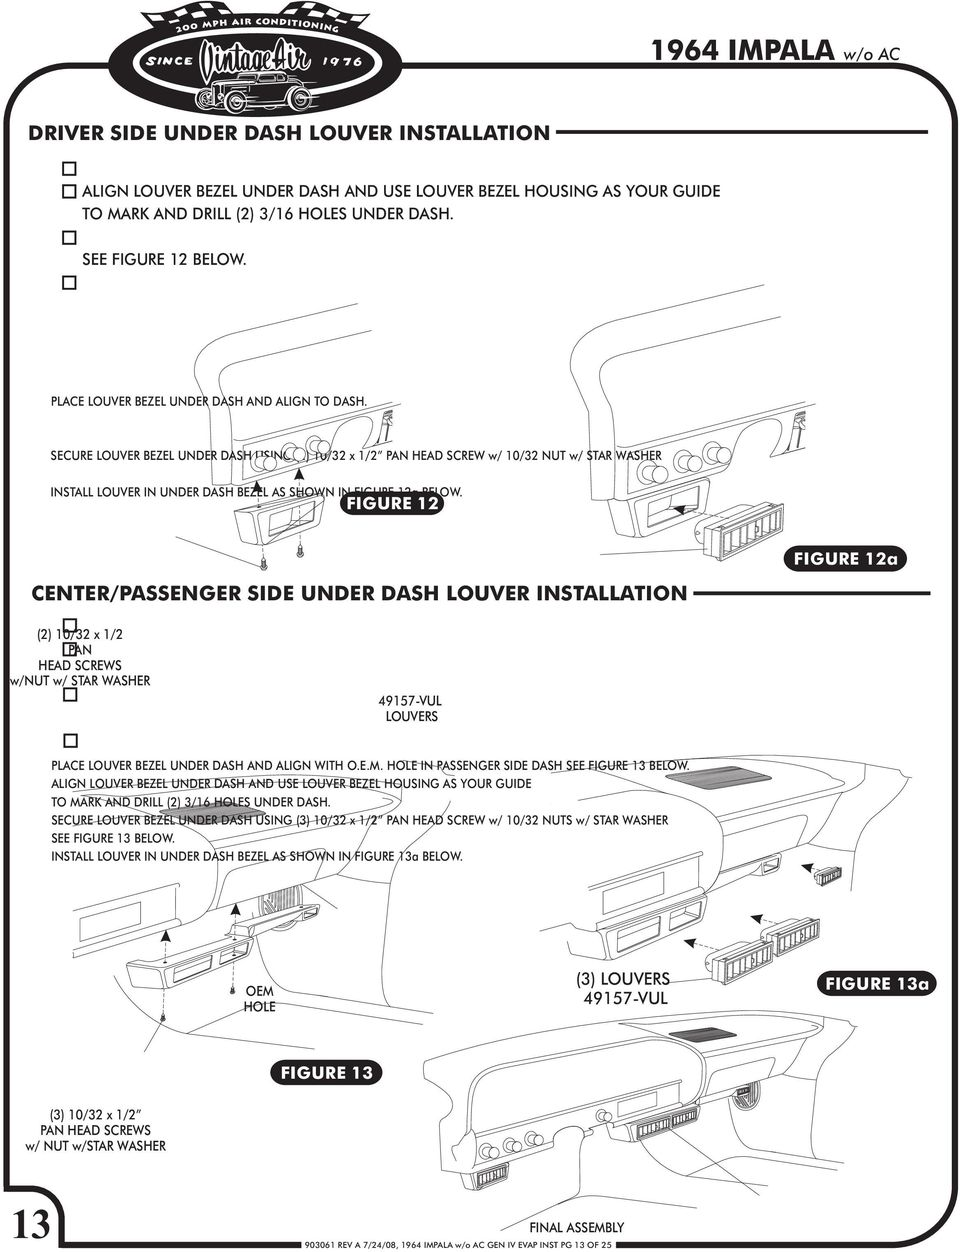 1964 Chevy Impala Pdf A C Compressor Relay Wiring Diagram Pot Secure Louver Bezel Under Dash Using 2 10 32 X 1